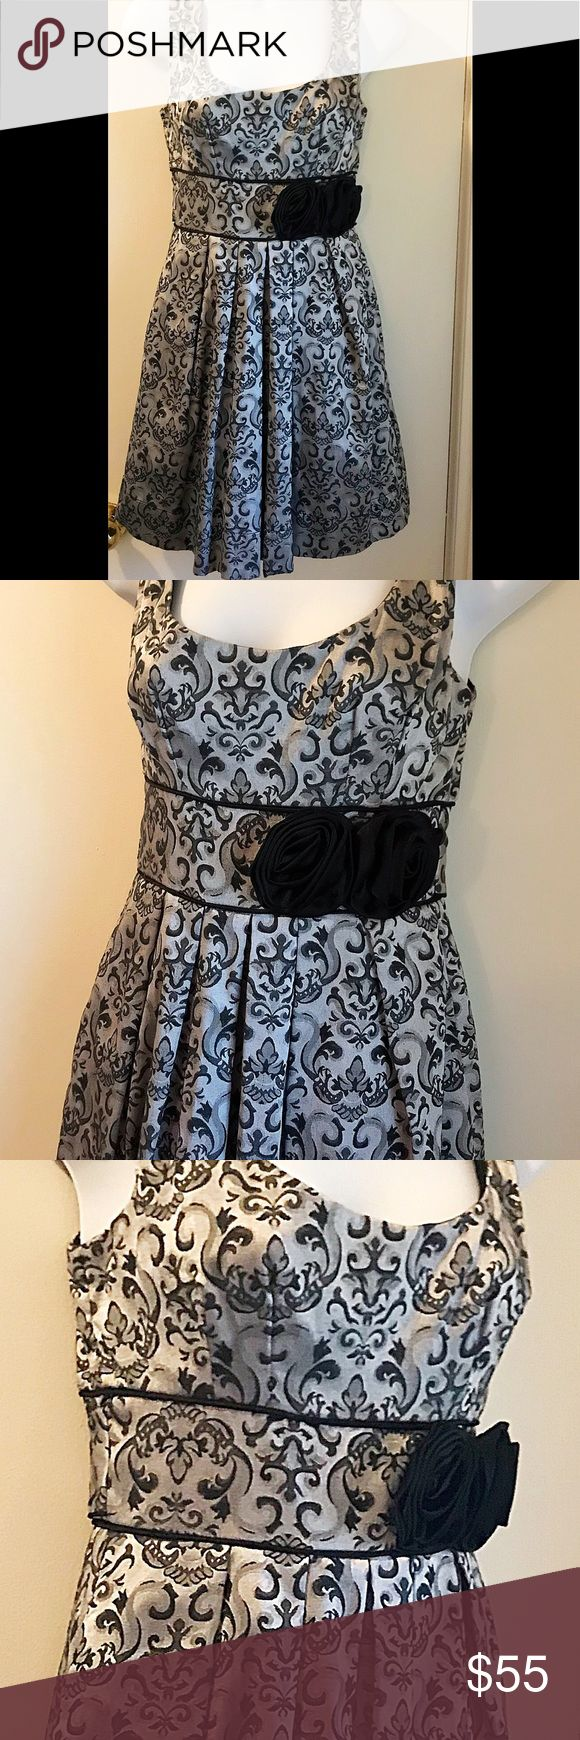 Speechless Occasion Dress Gorgeous dress in a metallic silver and black detailed pattern. Complimented with black satin rose detail and tie back. Great dress for any special occasion.  Sz 3 51% Cotton 46% Polyester  3% Spandex  109-18 Speechless Dresses